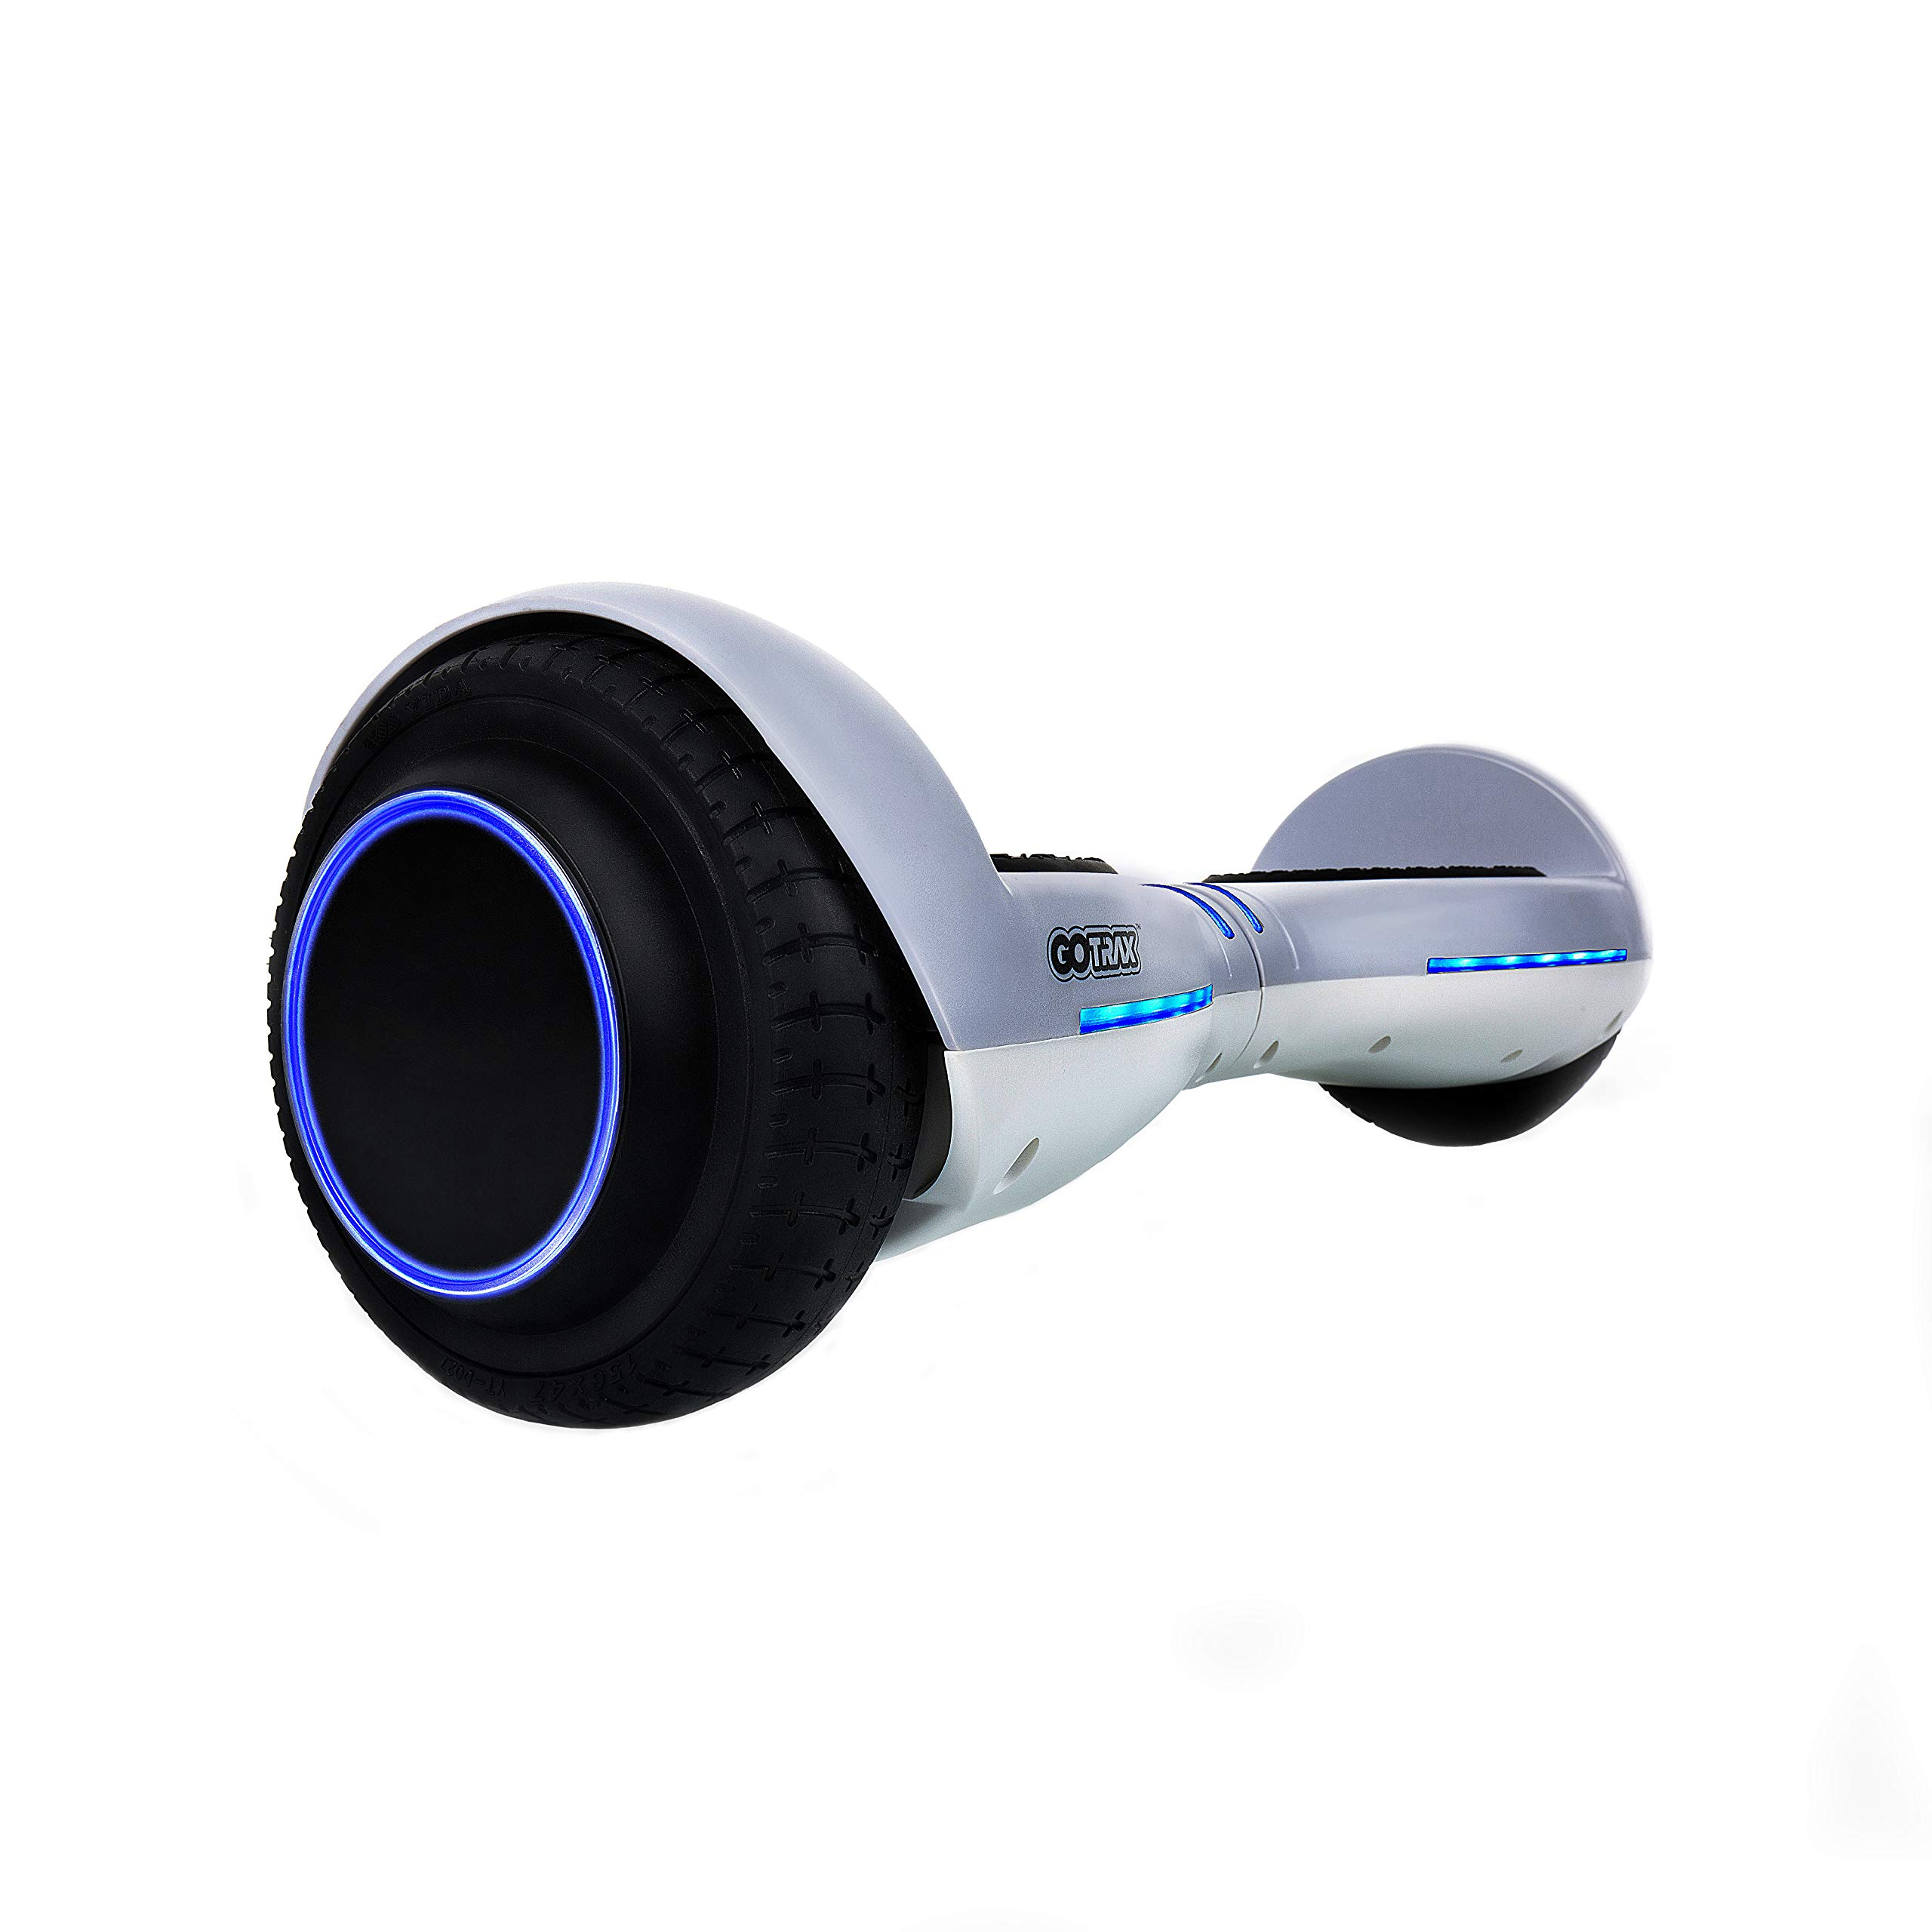 GOTRAX Hoverfly ION LED Hoverboard - UL Certified Hover Board w/Self Balancing Mode